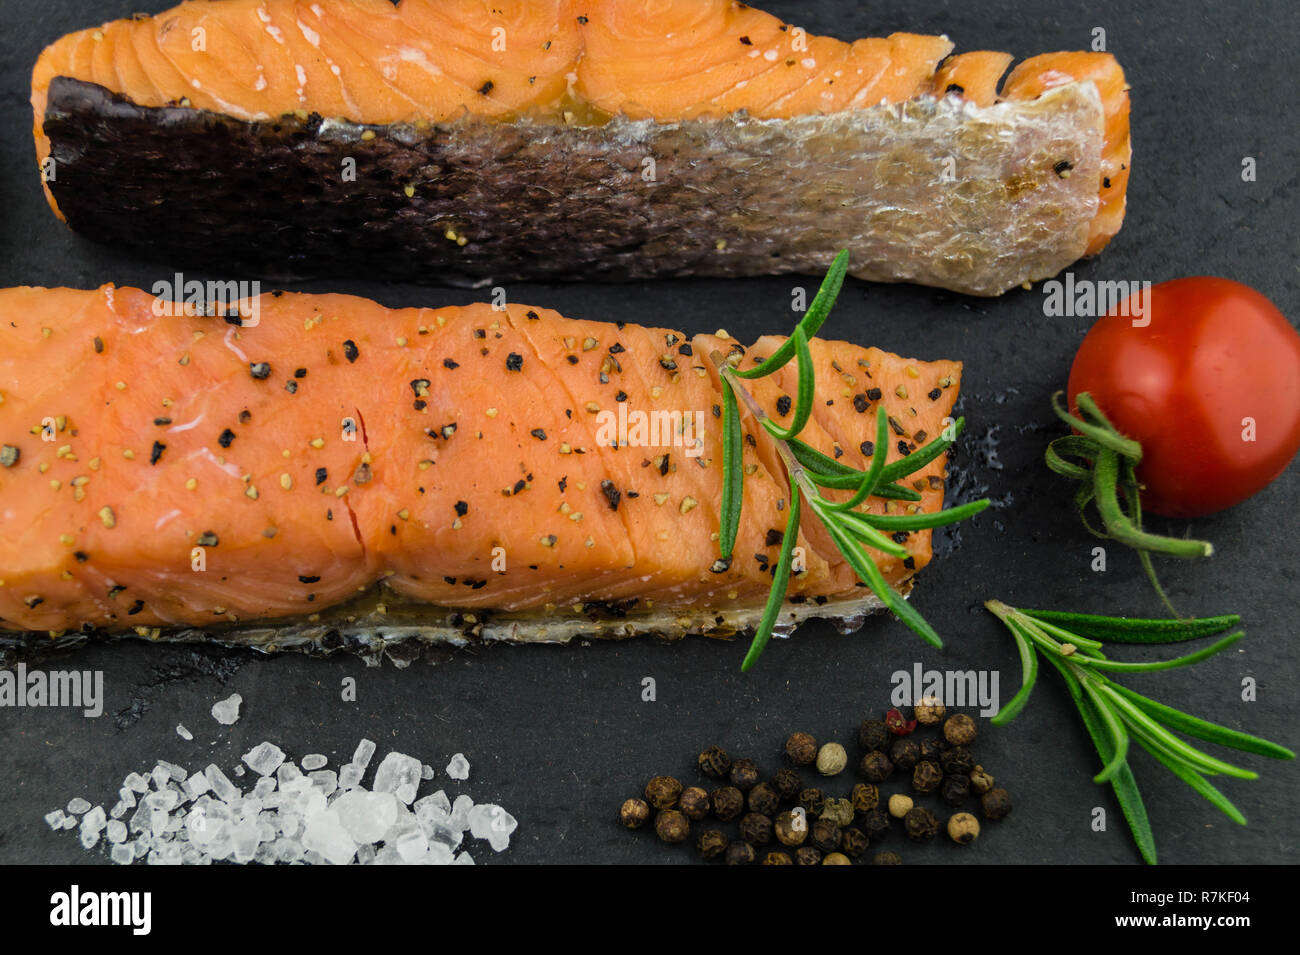 Salted Stripe of Atlantic ocean Salmon peppered and hot smoked - Stock Image